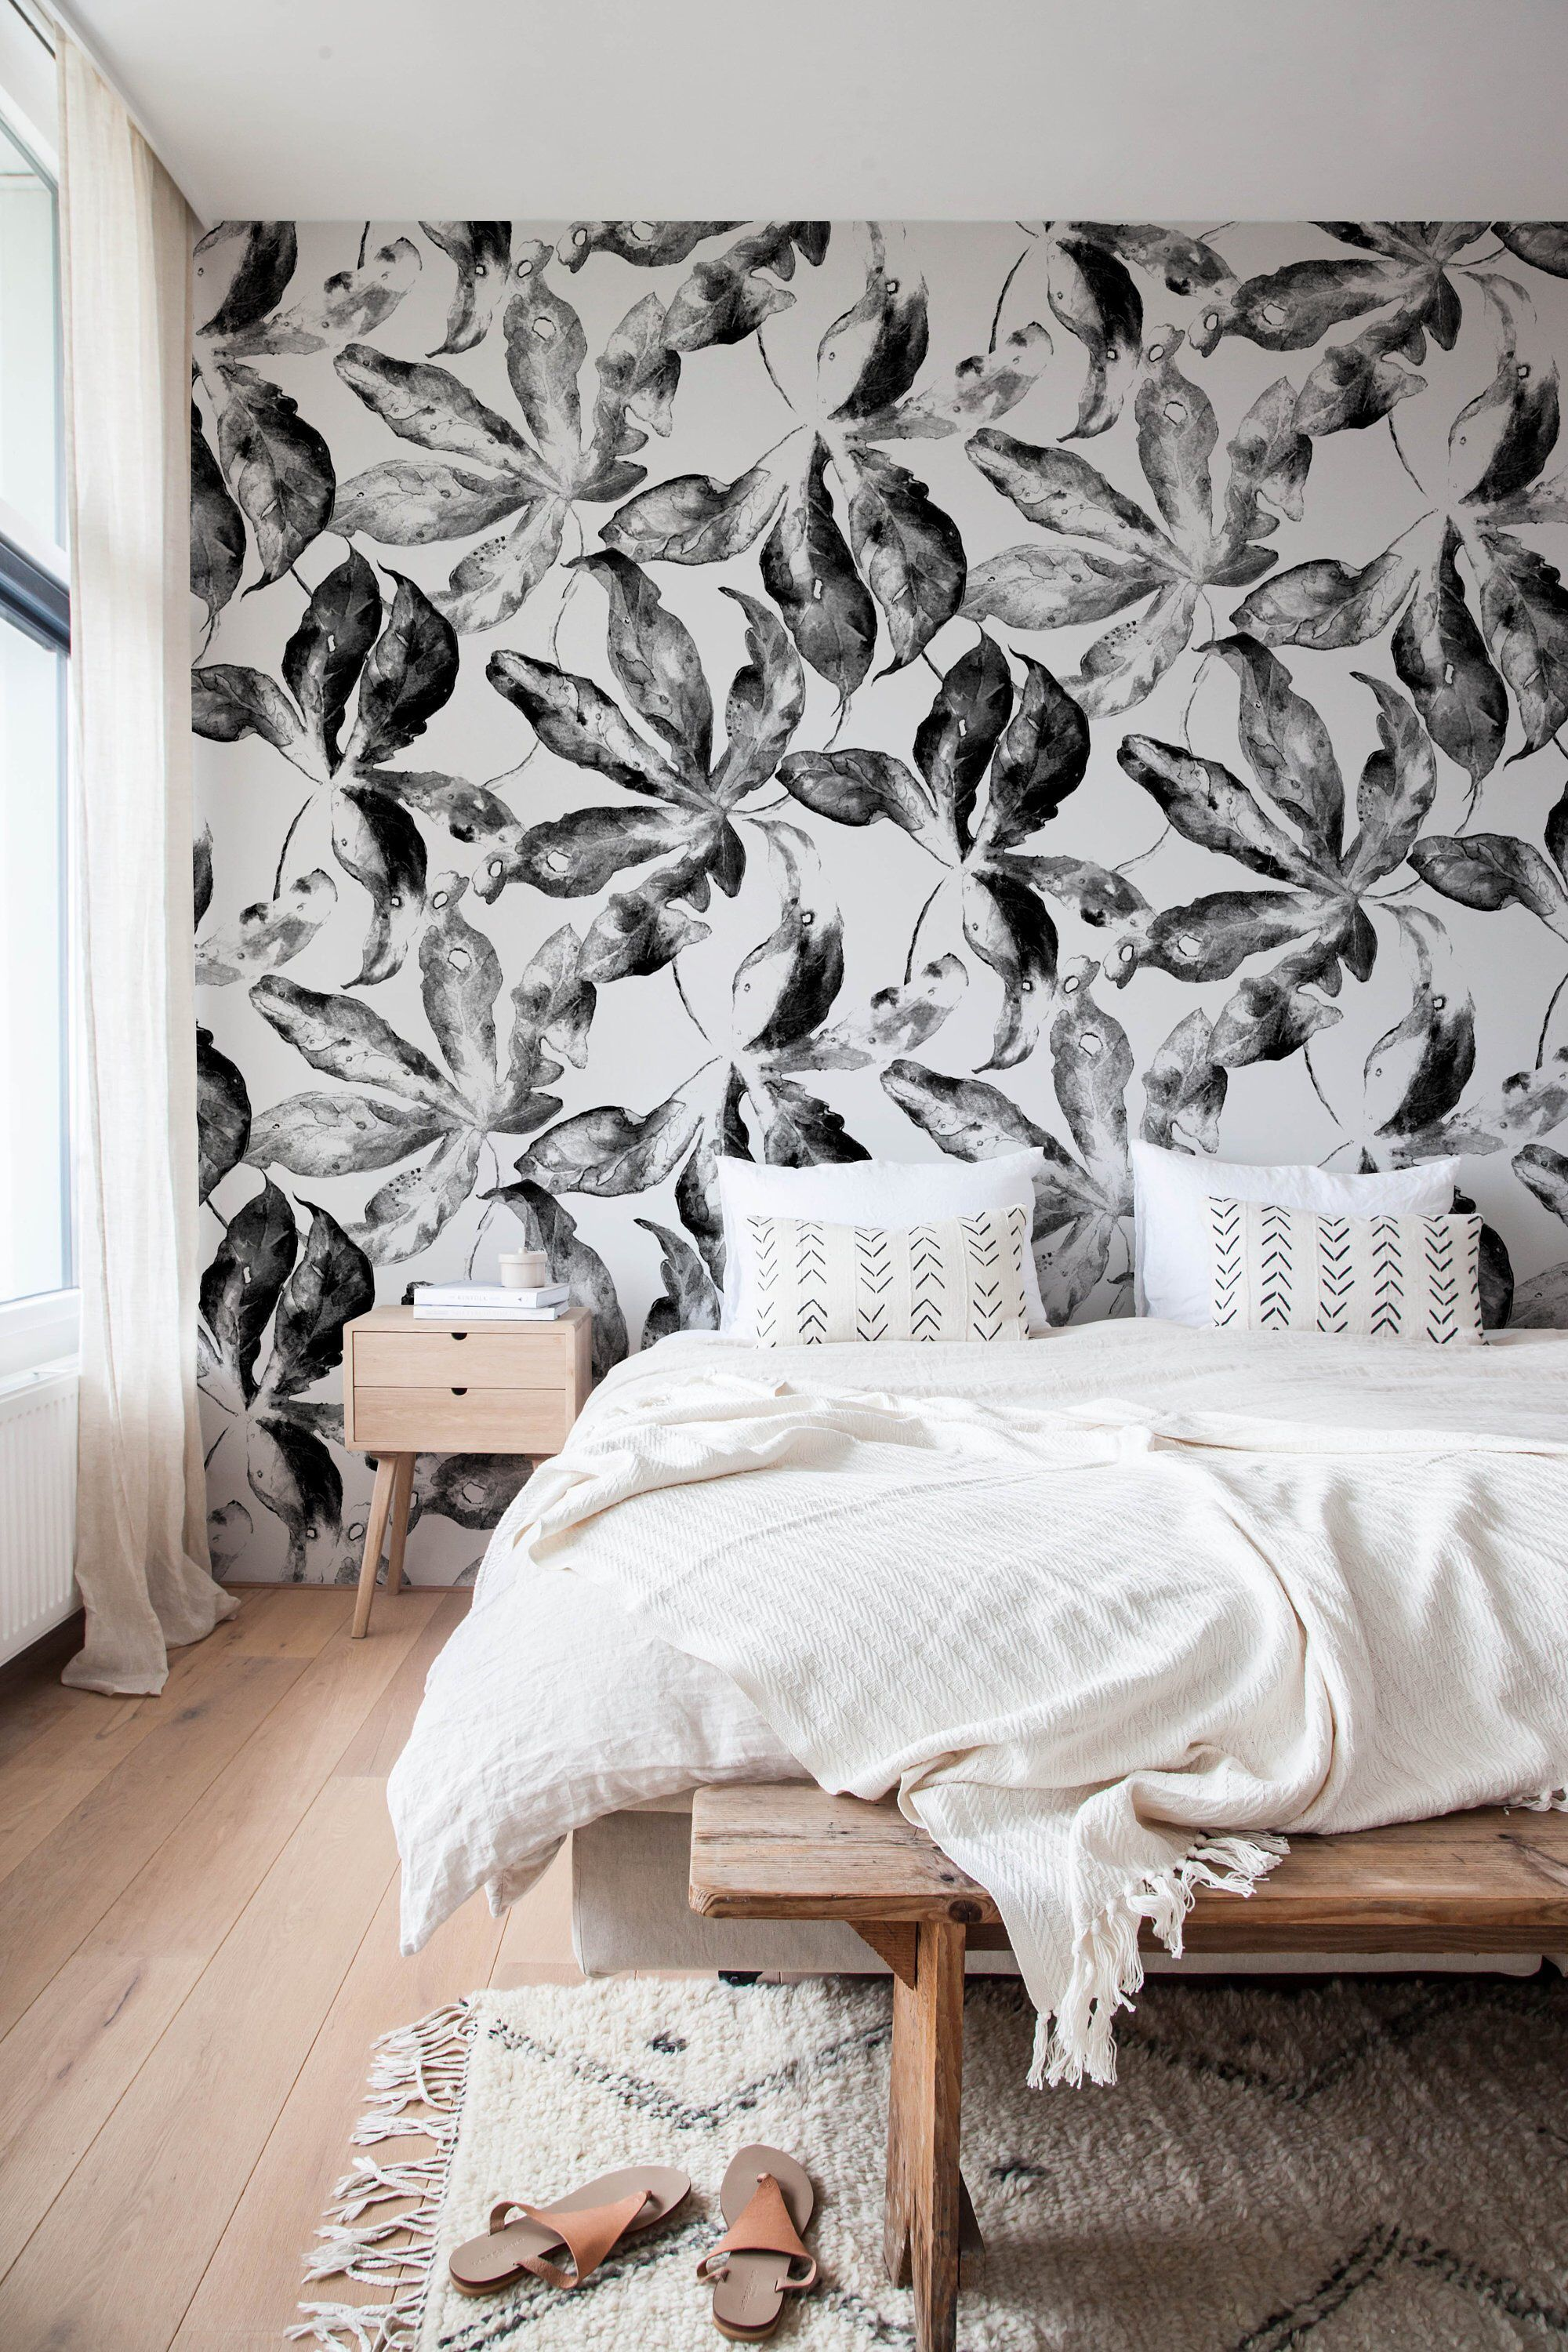 Black And White Wallpaper Peel And Stick Wallpaper Removable Etsy Removable Wallpaper Peel And Stick Wallpaper Wall Design